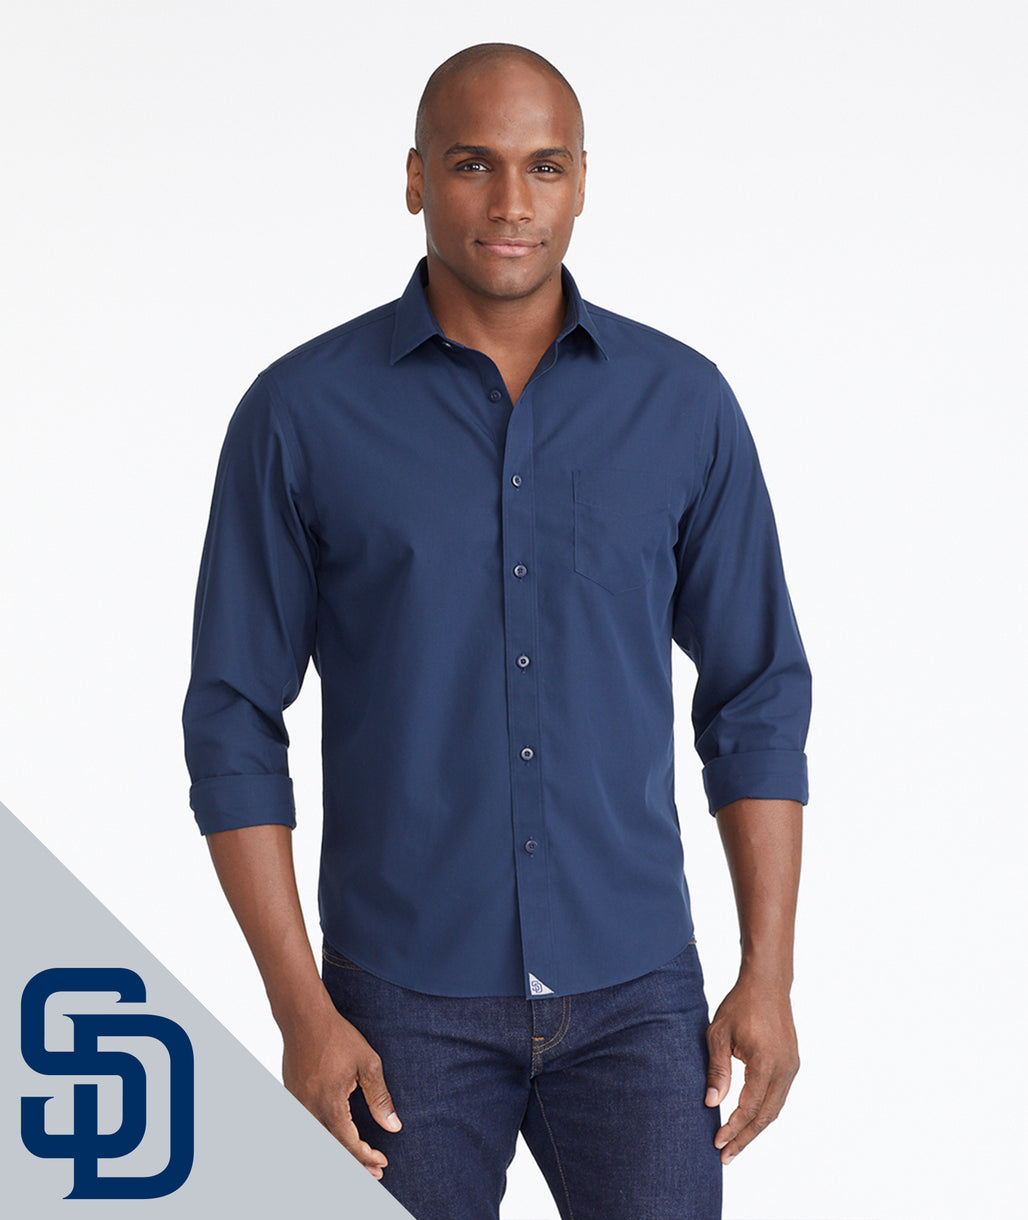 Model wearing a Navy Padres Signature Series Button-Down